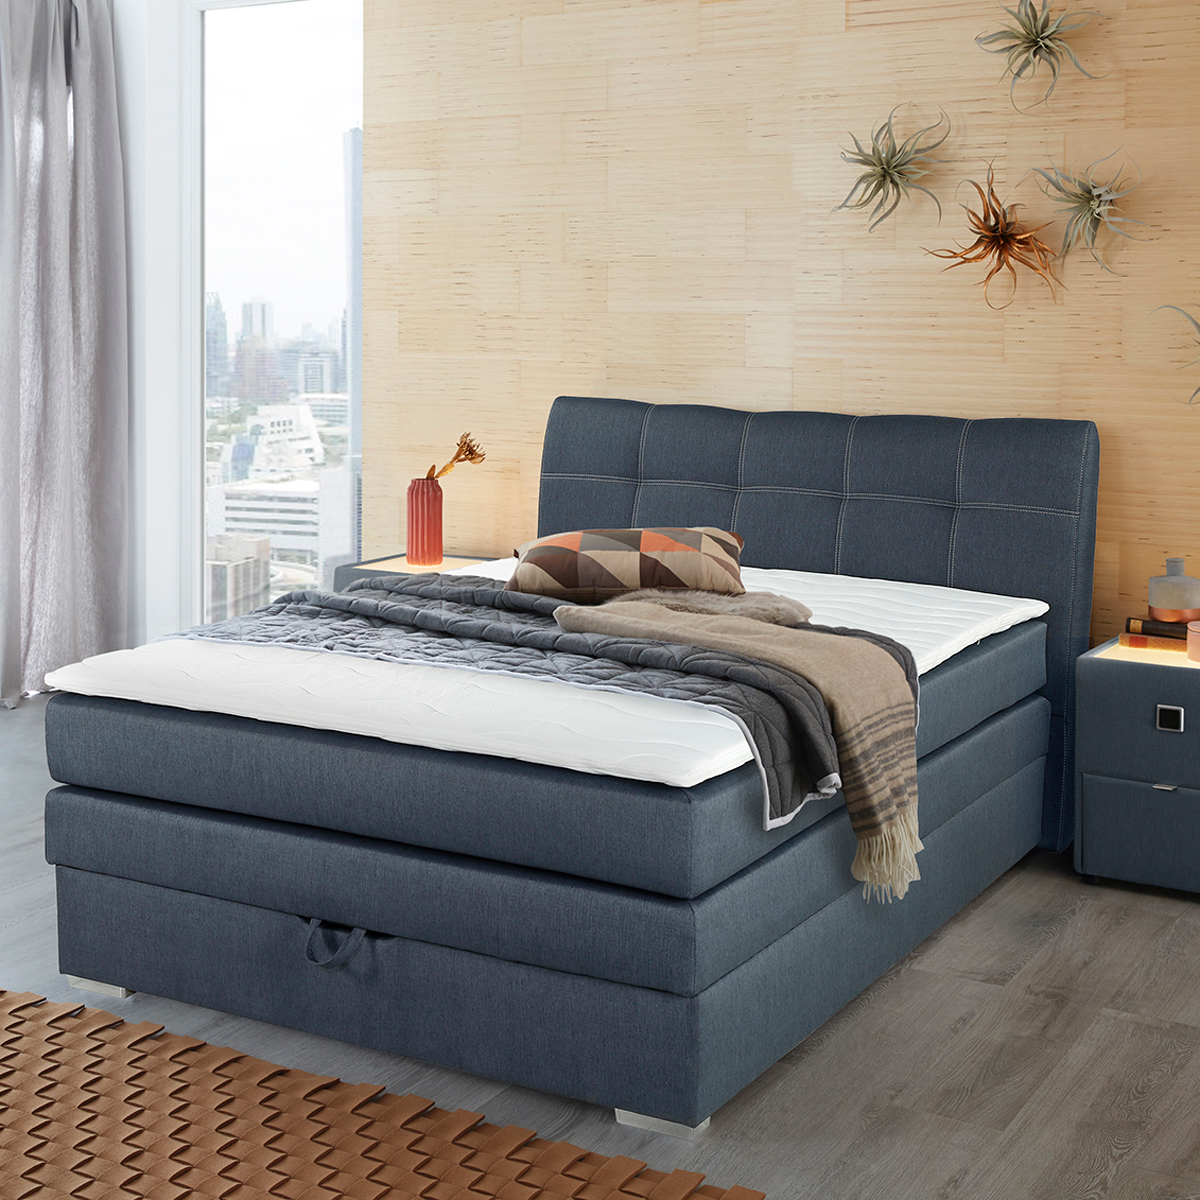 boxspringbett amelie 140 in graublau mit bettkasten topper. Black Bedroom Furniture Sets. Home Design Ideas